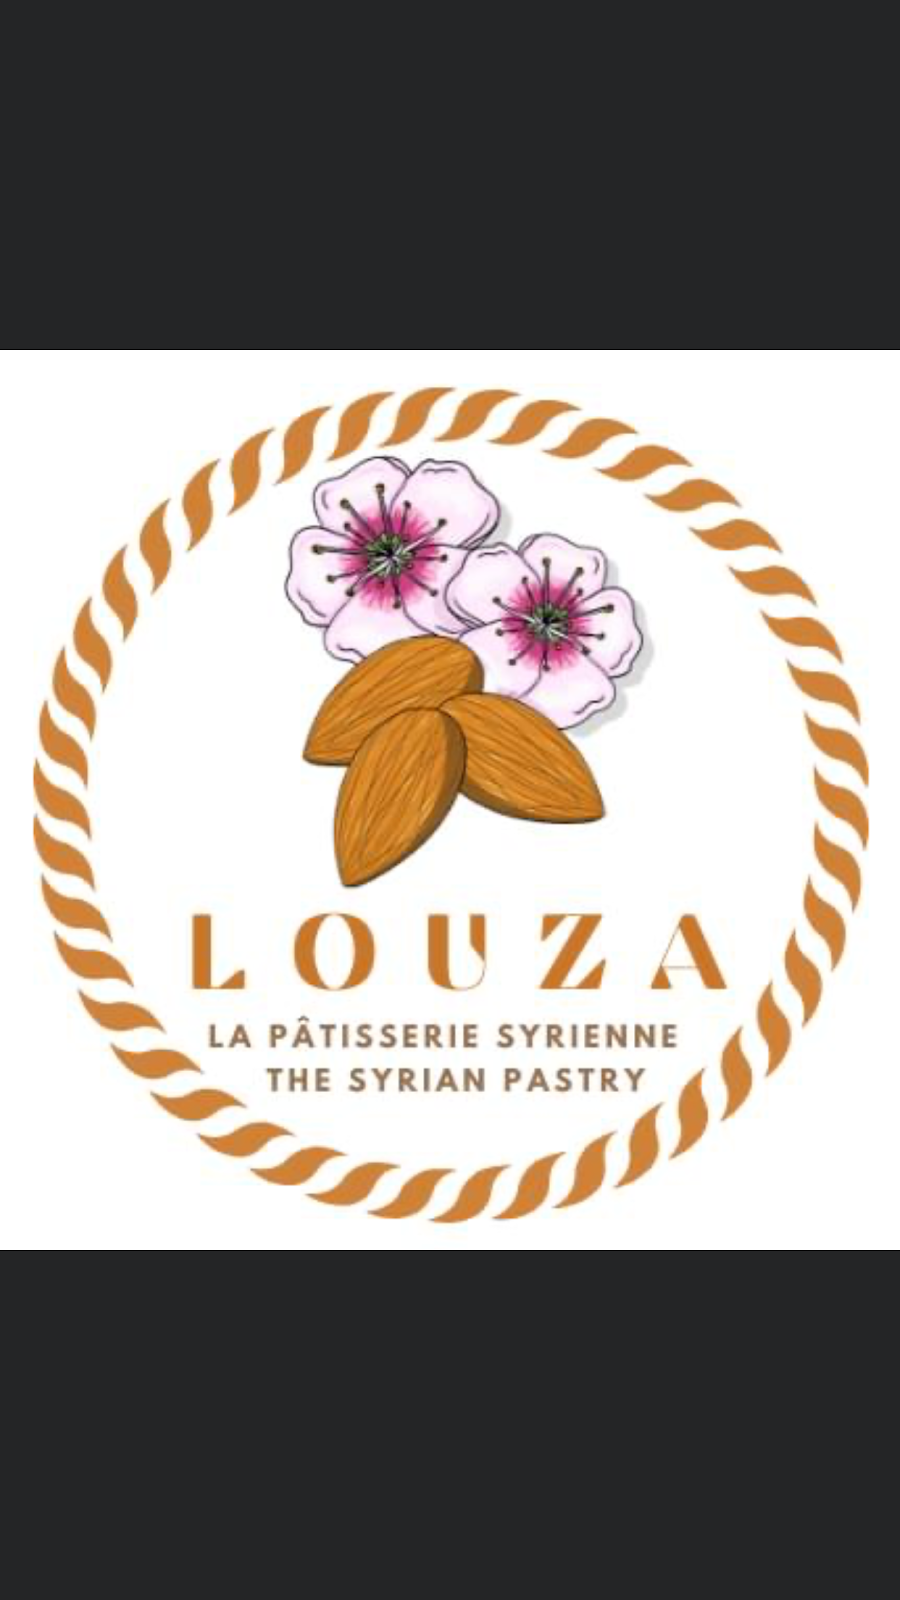 Louza   bakery   537 Rue Bourget, Vaudreuil-Dorion, QC J7V 9S4, Canada   4383414465 OR +1 438-341-4465